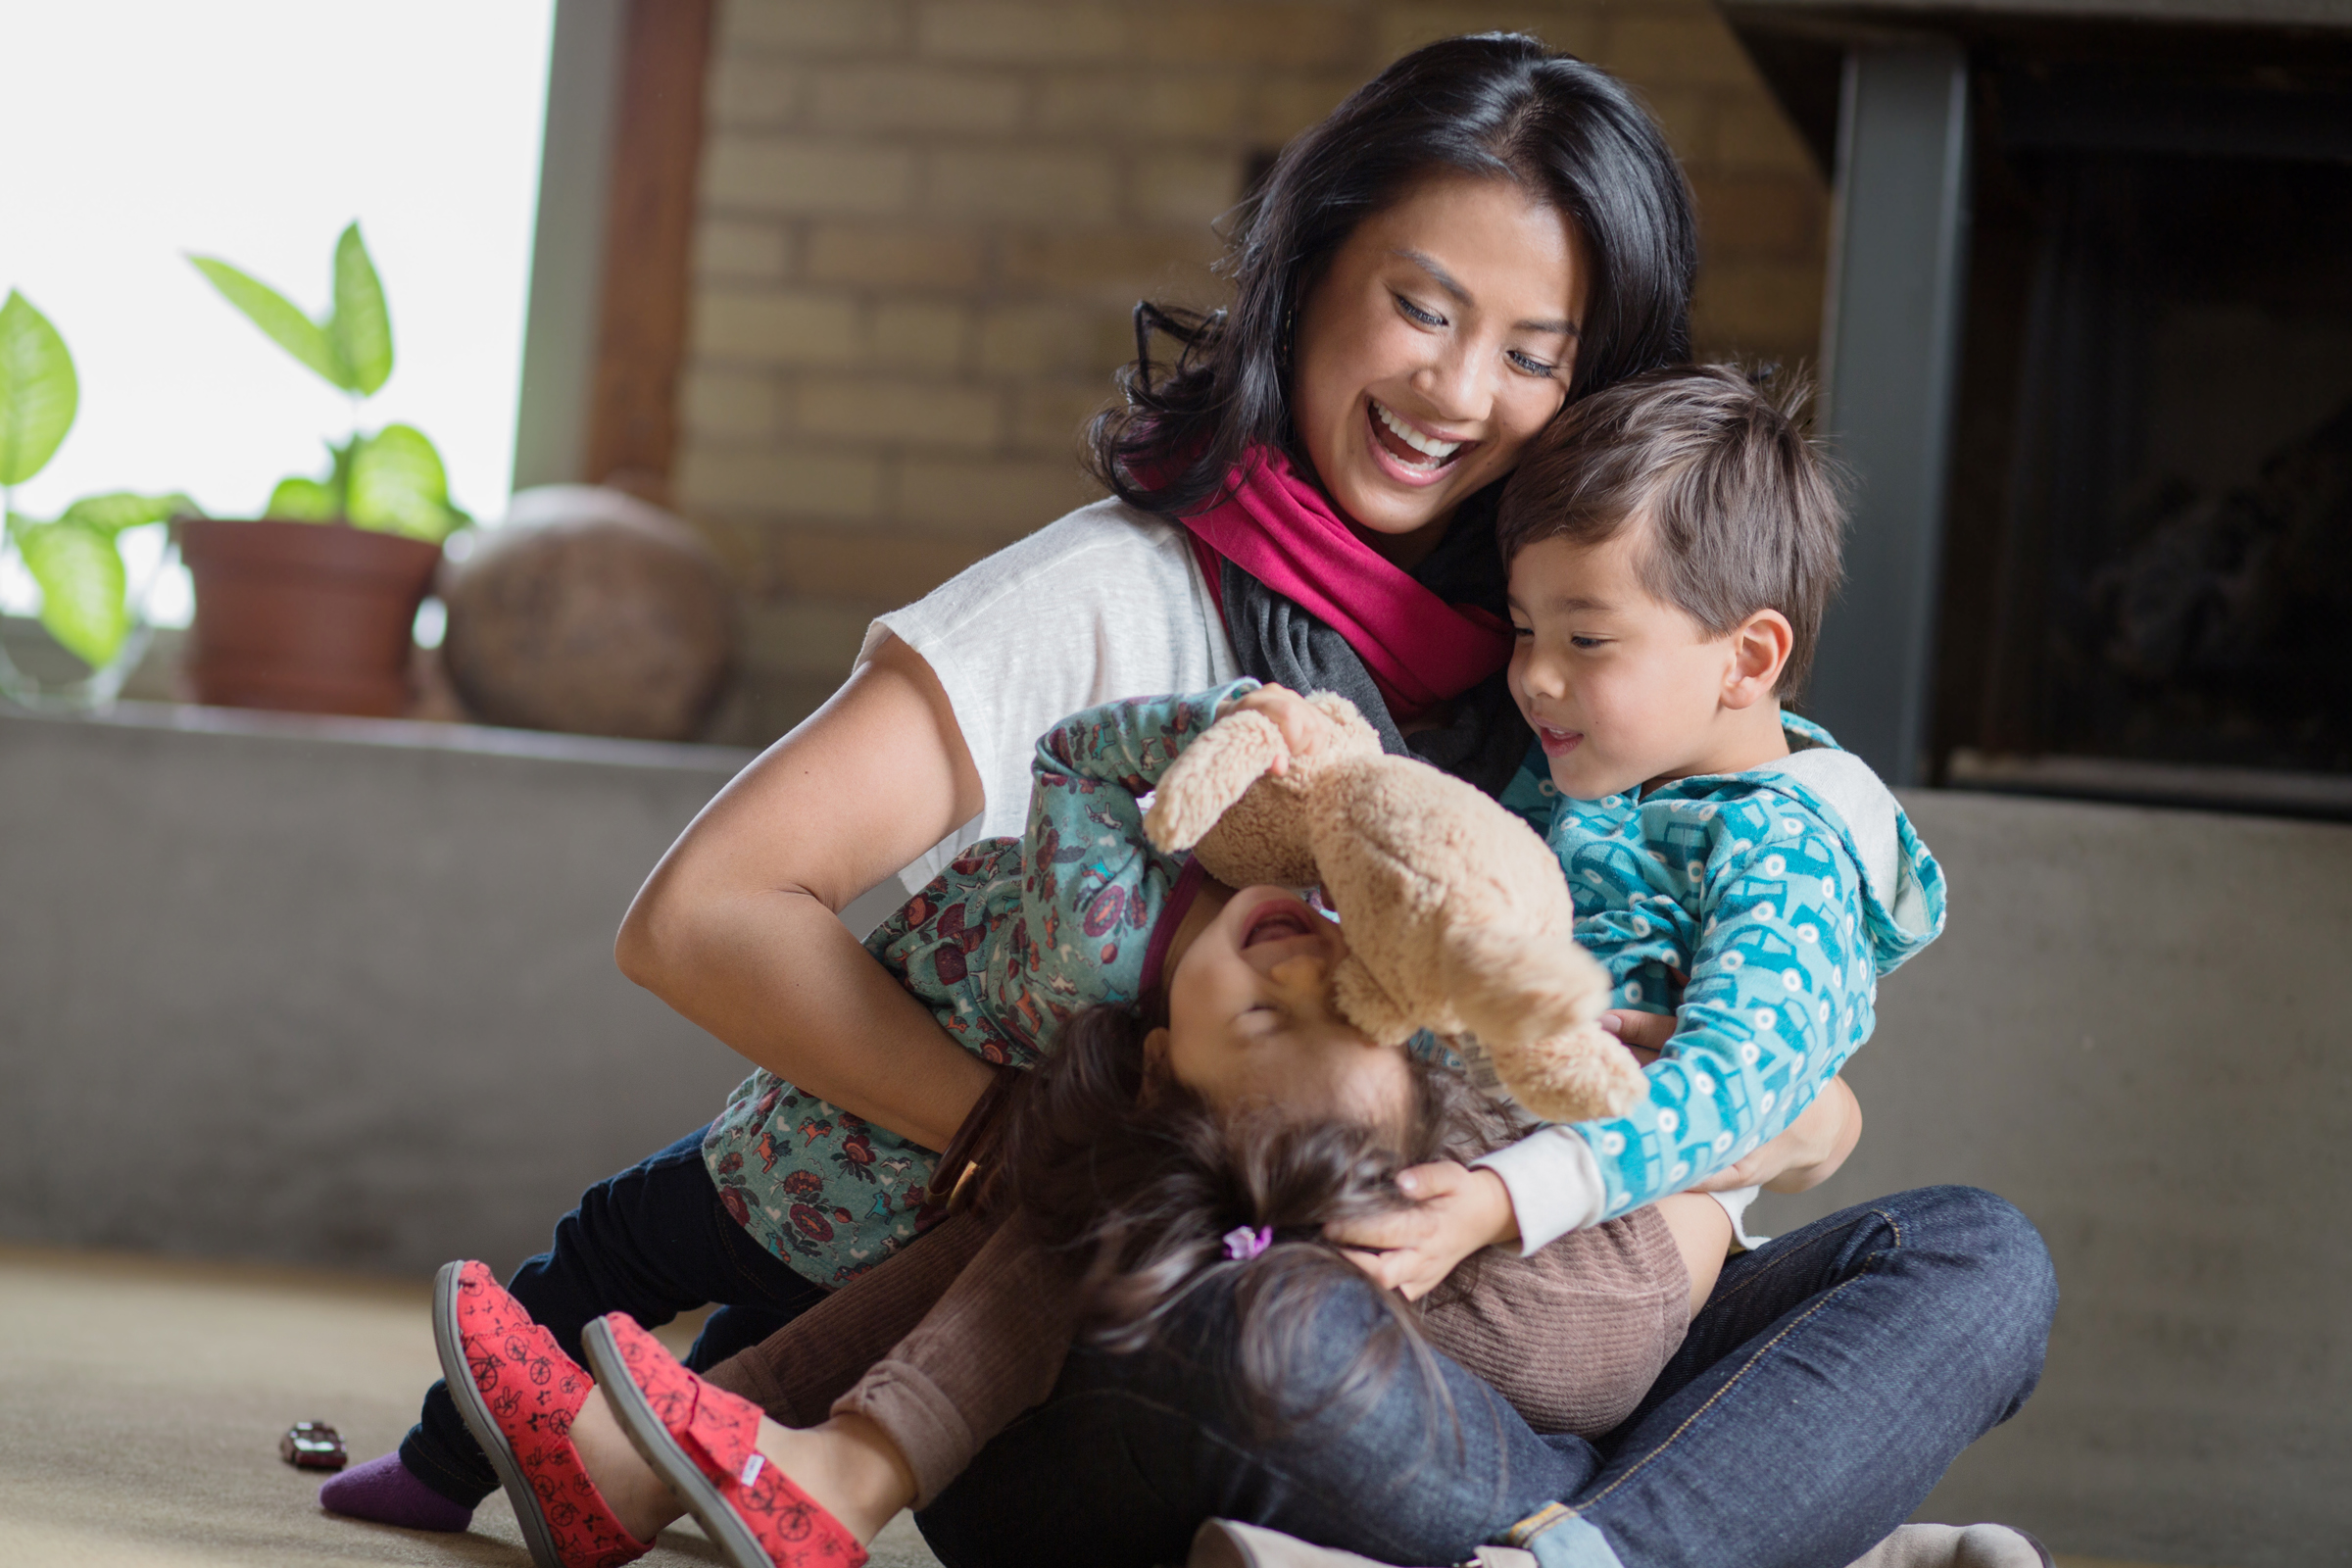 Angela Tsai, inventor of the Mamachic, with her kids